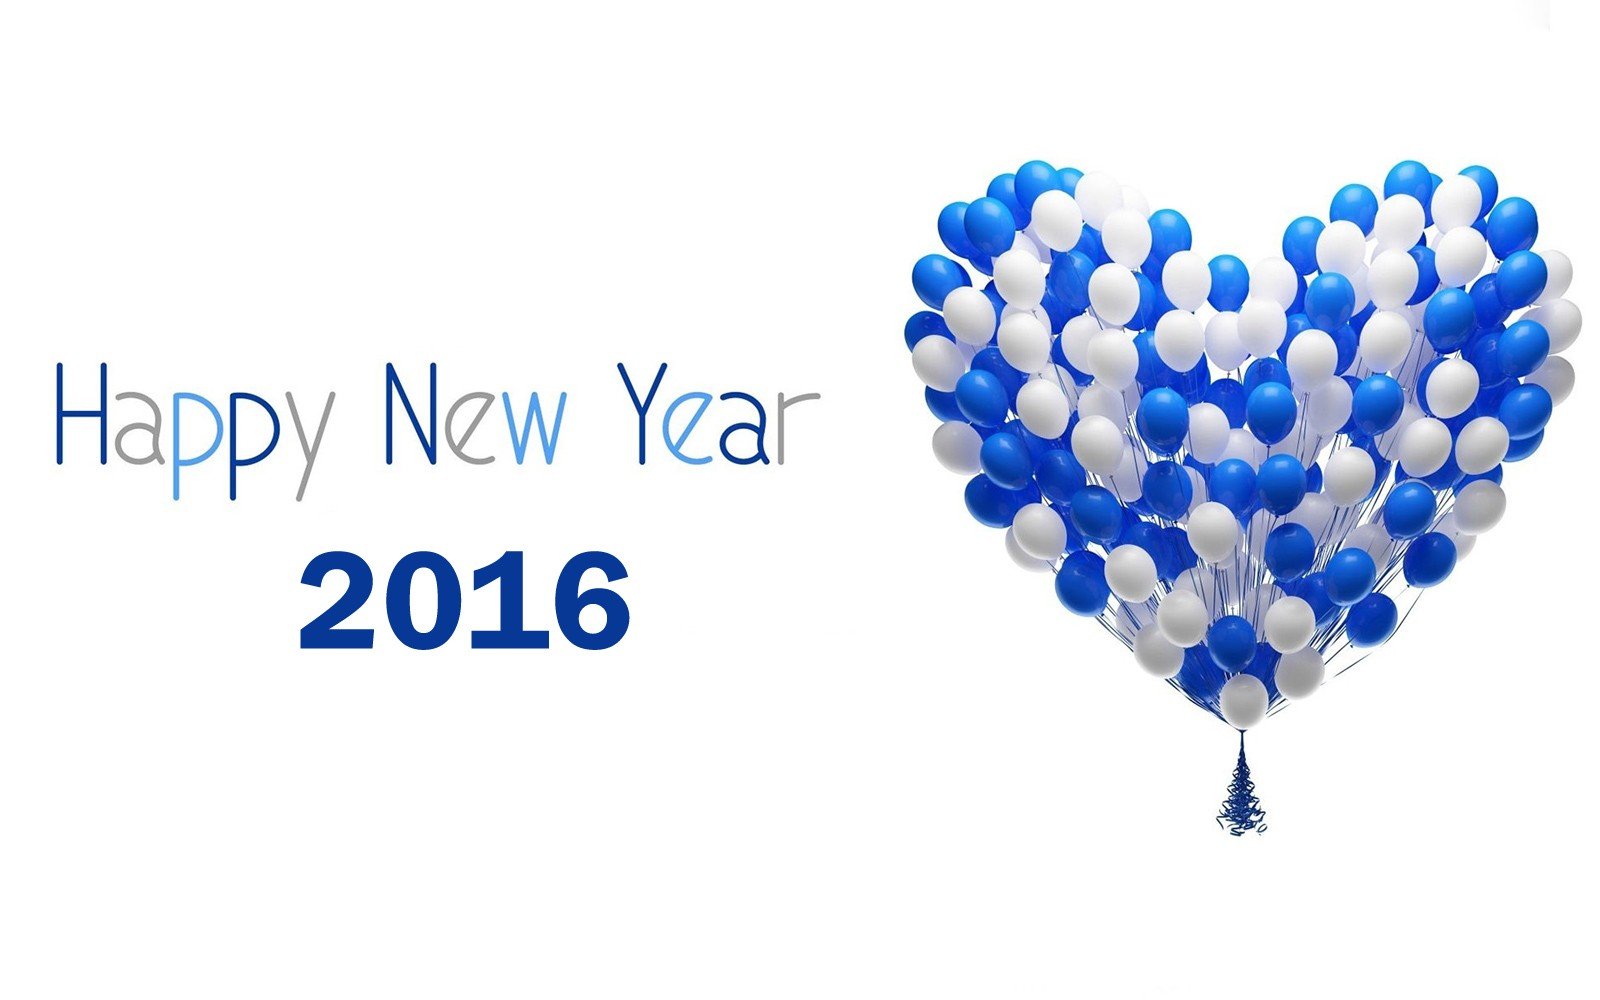 Happy New Year 2016 Heart Balloon Picture